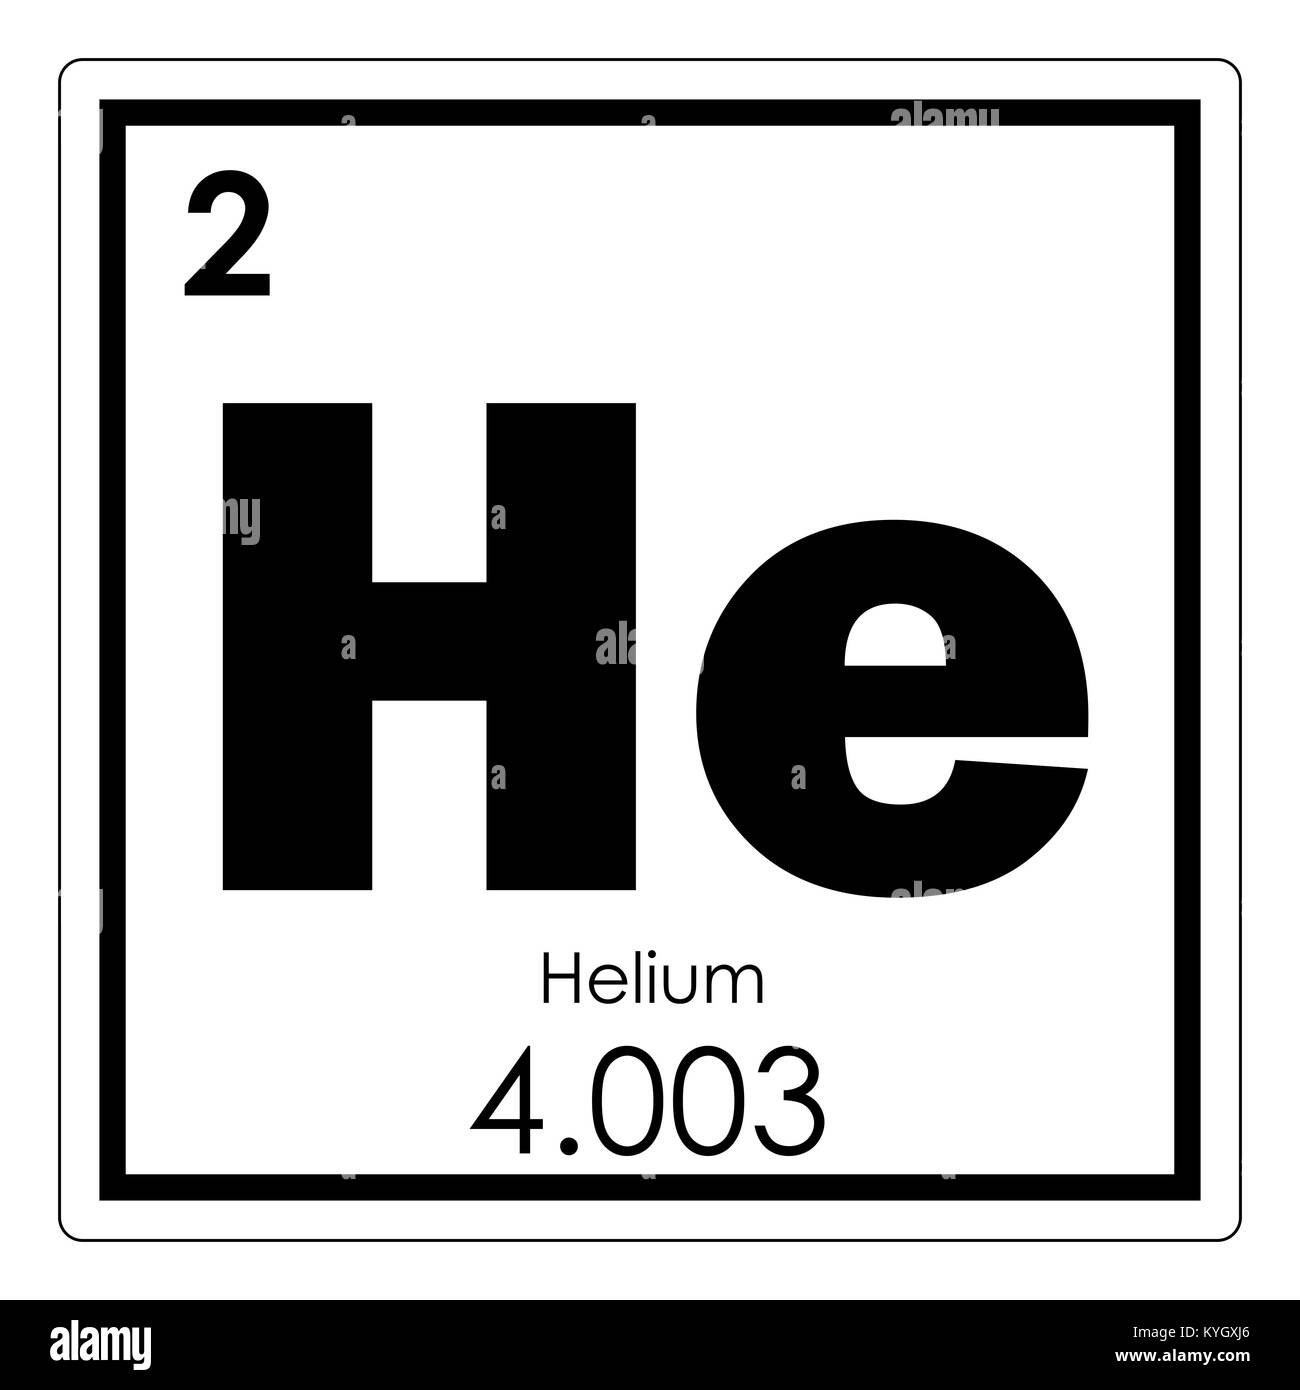 Helium chemical element periodic table science symbol stock photo helium chemical element periodic table science symbol buycottarizona